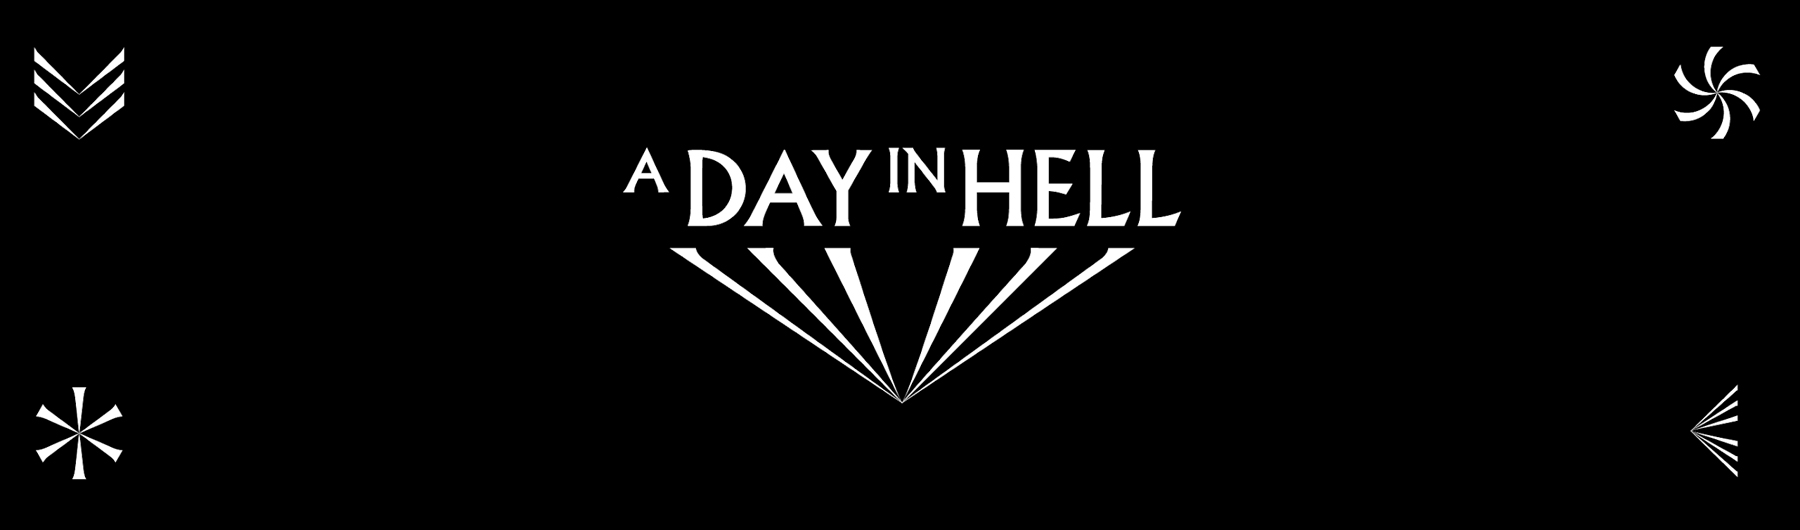 A Day in Hell Benelux 2020